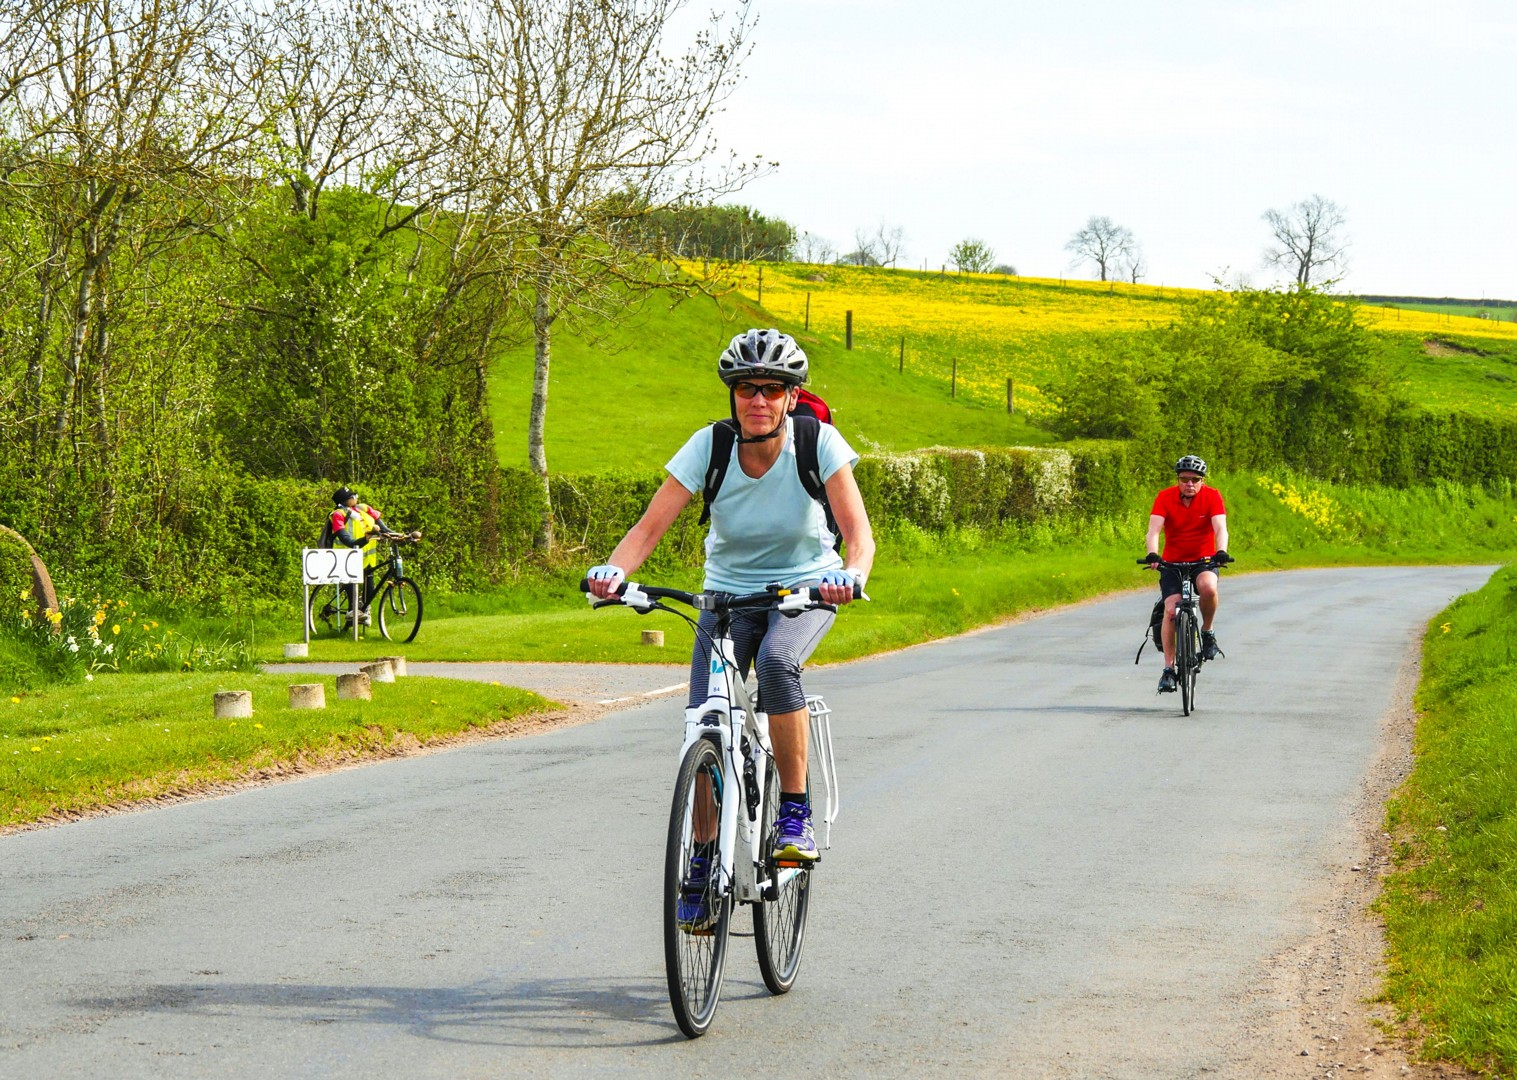 bike-friendly-accommodation-uk-coast-to-coast-route.jpg - UK - C2C - Coast to Coast - Supported Leisure Cycling Holiday - Family Cycling